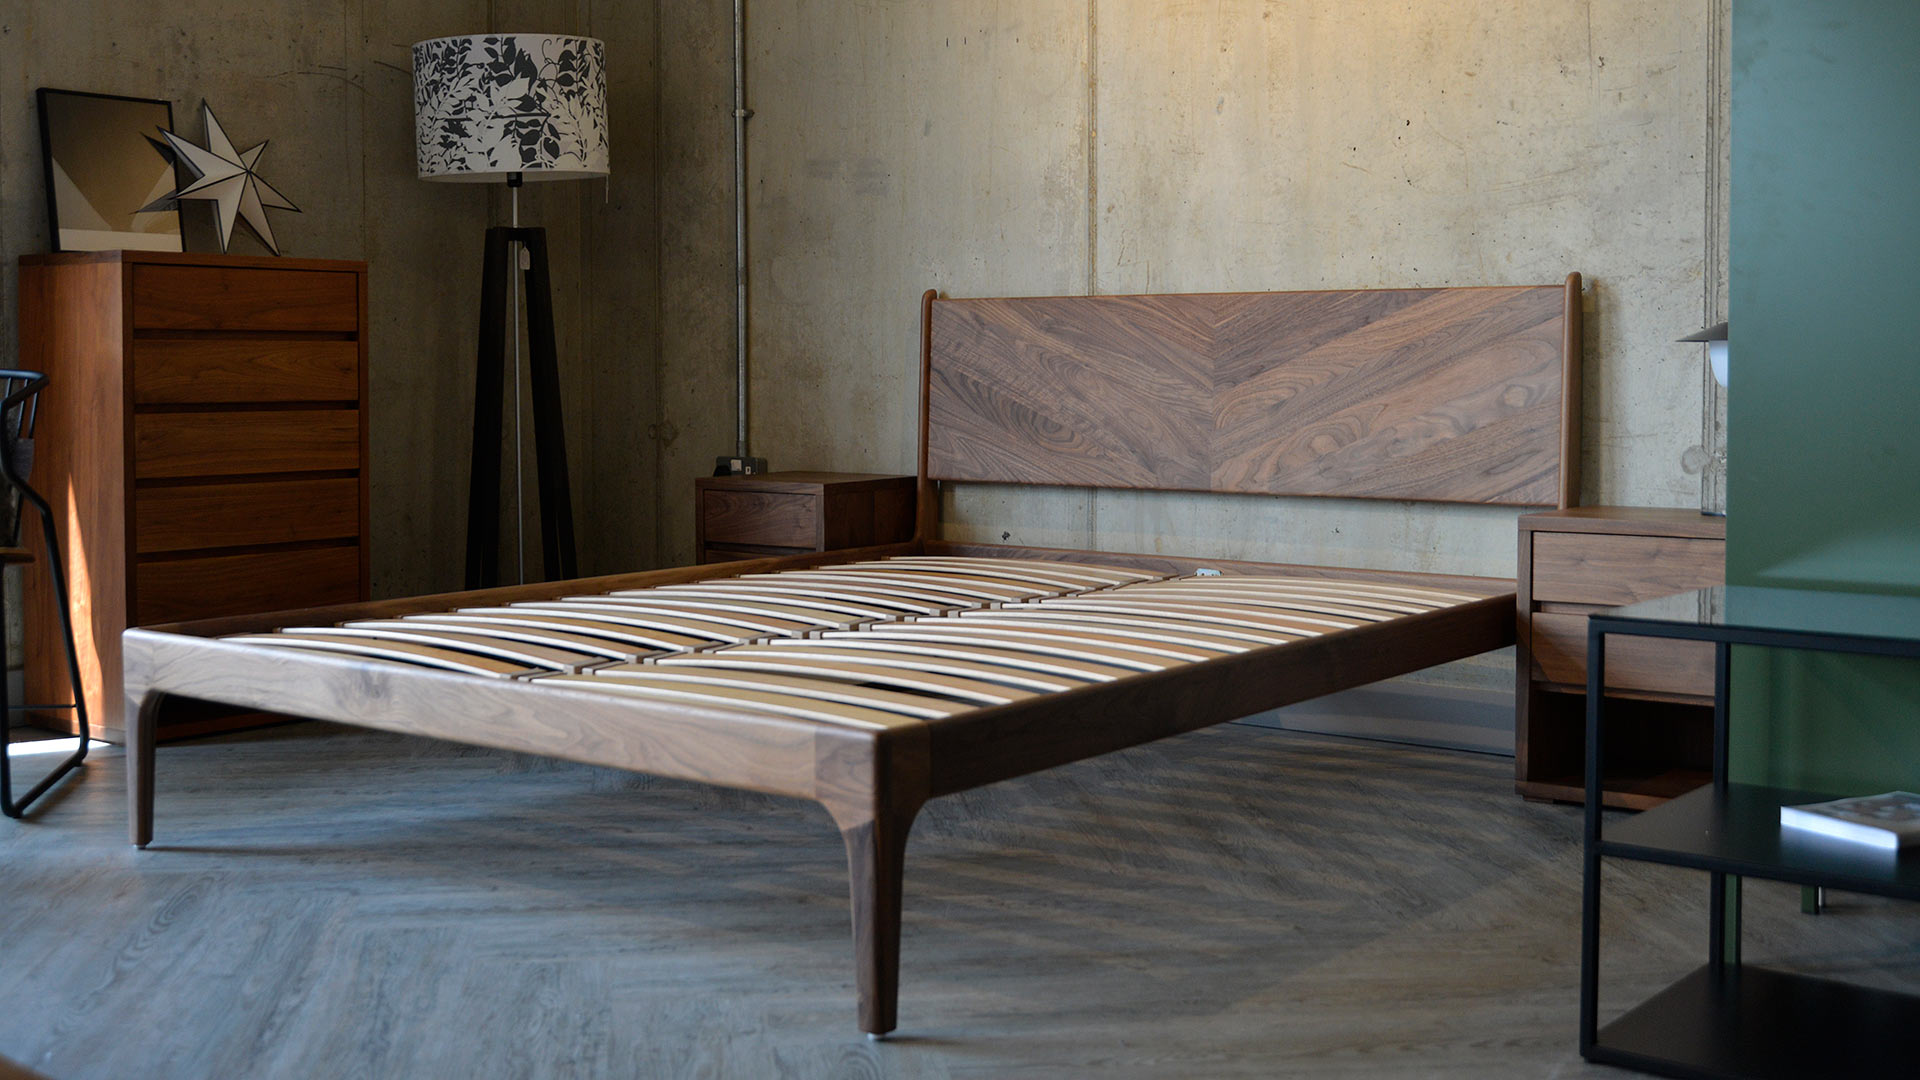 Our hand-made mid-century style wooden bedframe the Hoxton Bed with Chevron headboard, shown in Walnut.